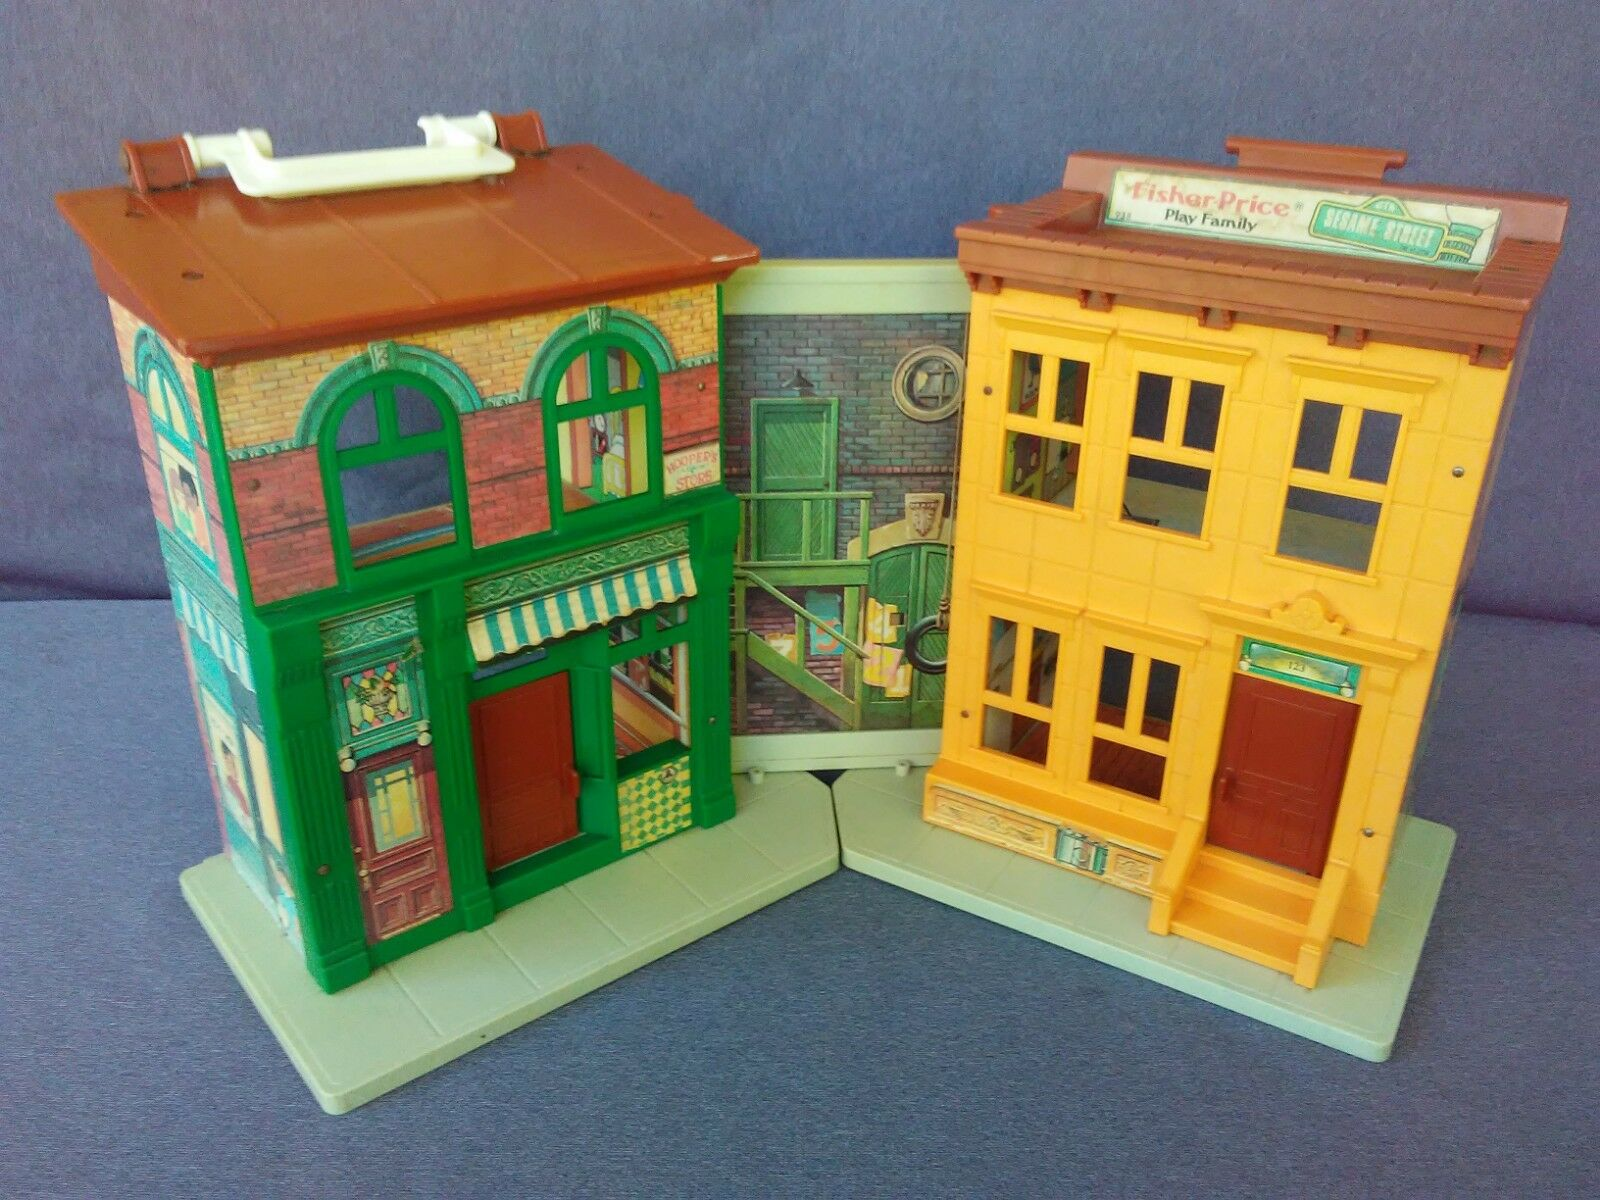 VINTAGE FISHER PRICE  LITTLE PEOPLE PLAY FAMILY SESAME STREET BUILDING ONLY